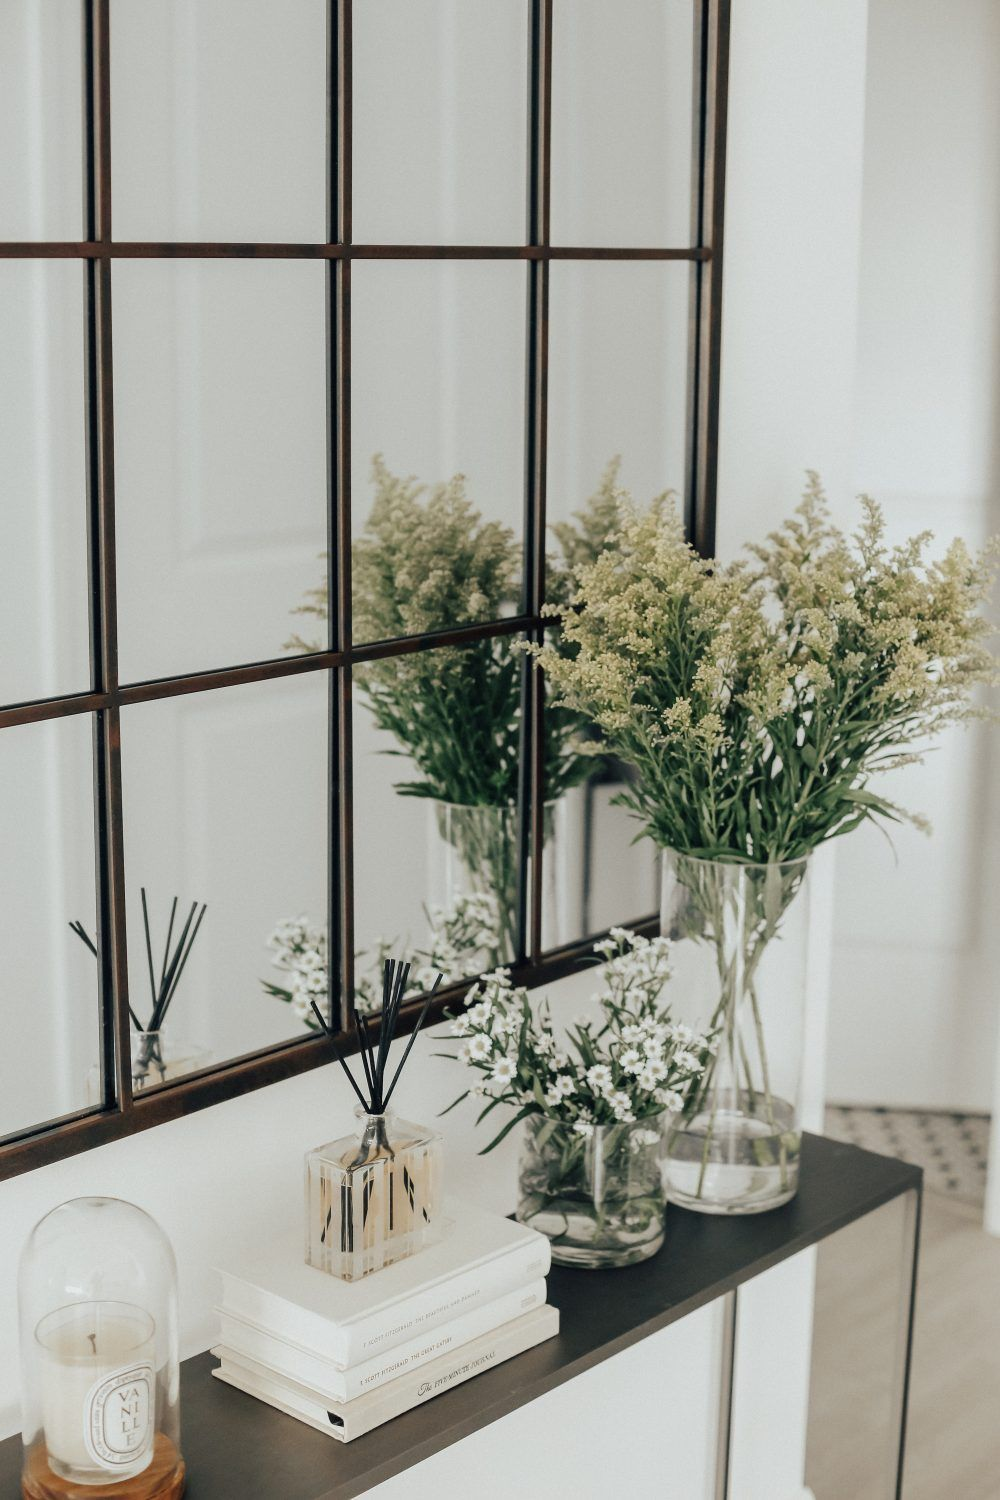 Condo entry way cb2 mini mill console table arch mirror condo entry way cb2 mini mill console table arch mirror geotapseo Image collections